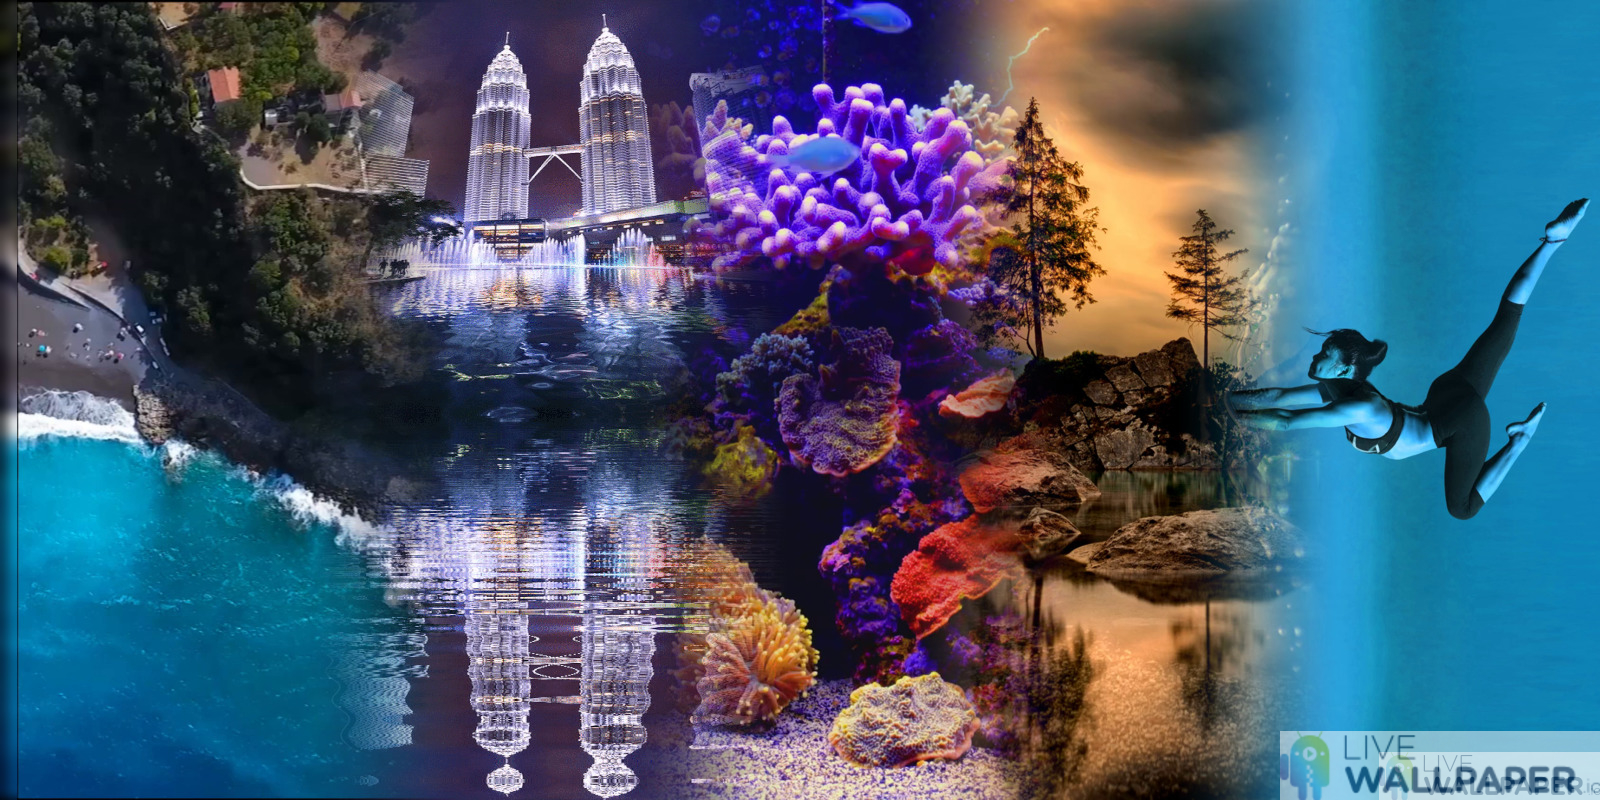 37 cool live wallpapers tagged with water, sorted by date ...